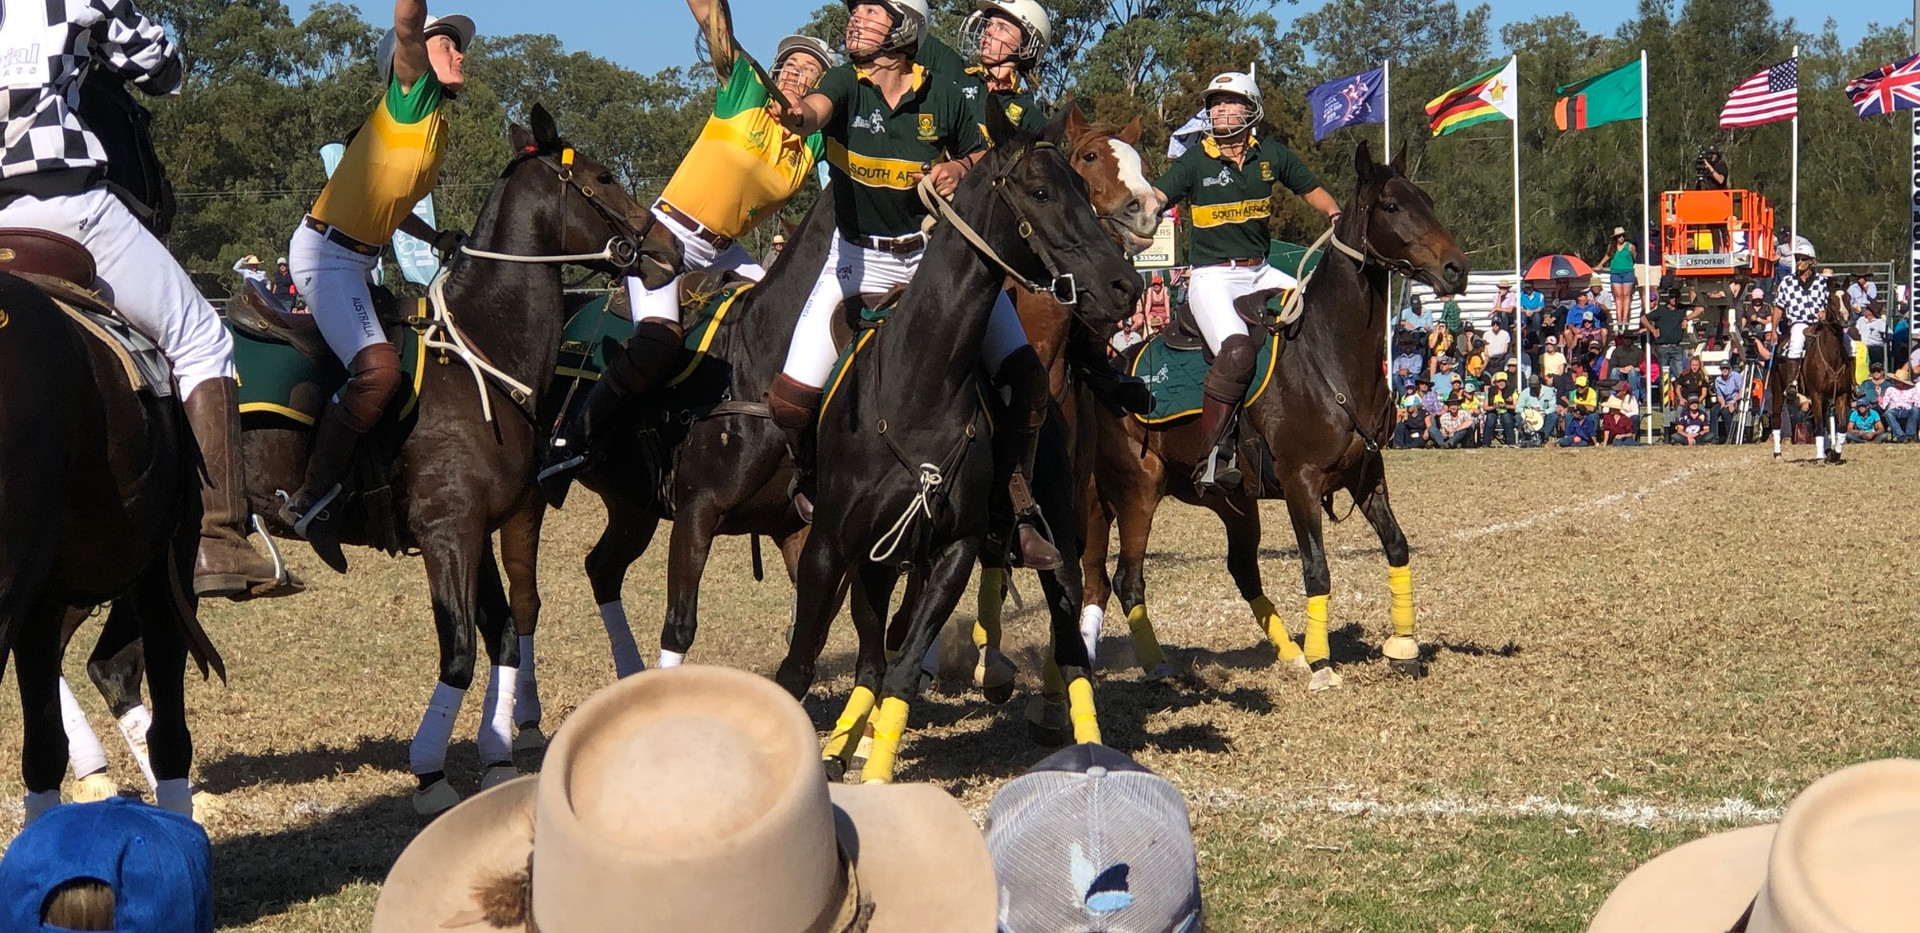 Polocrosse World Cup 2019 at Warwick